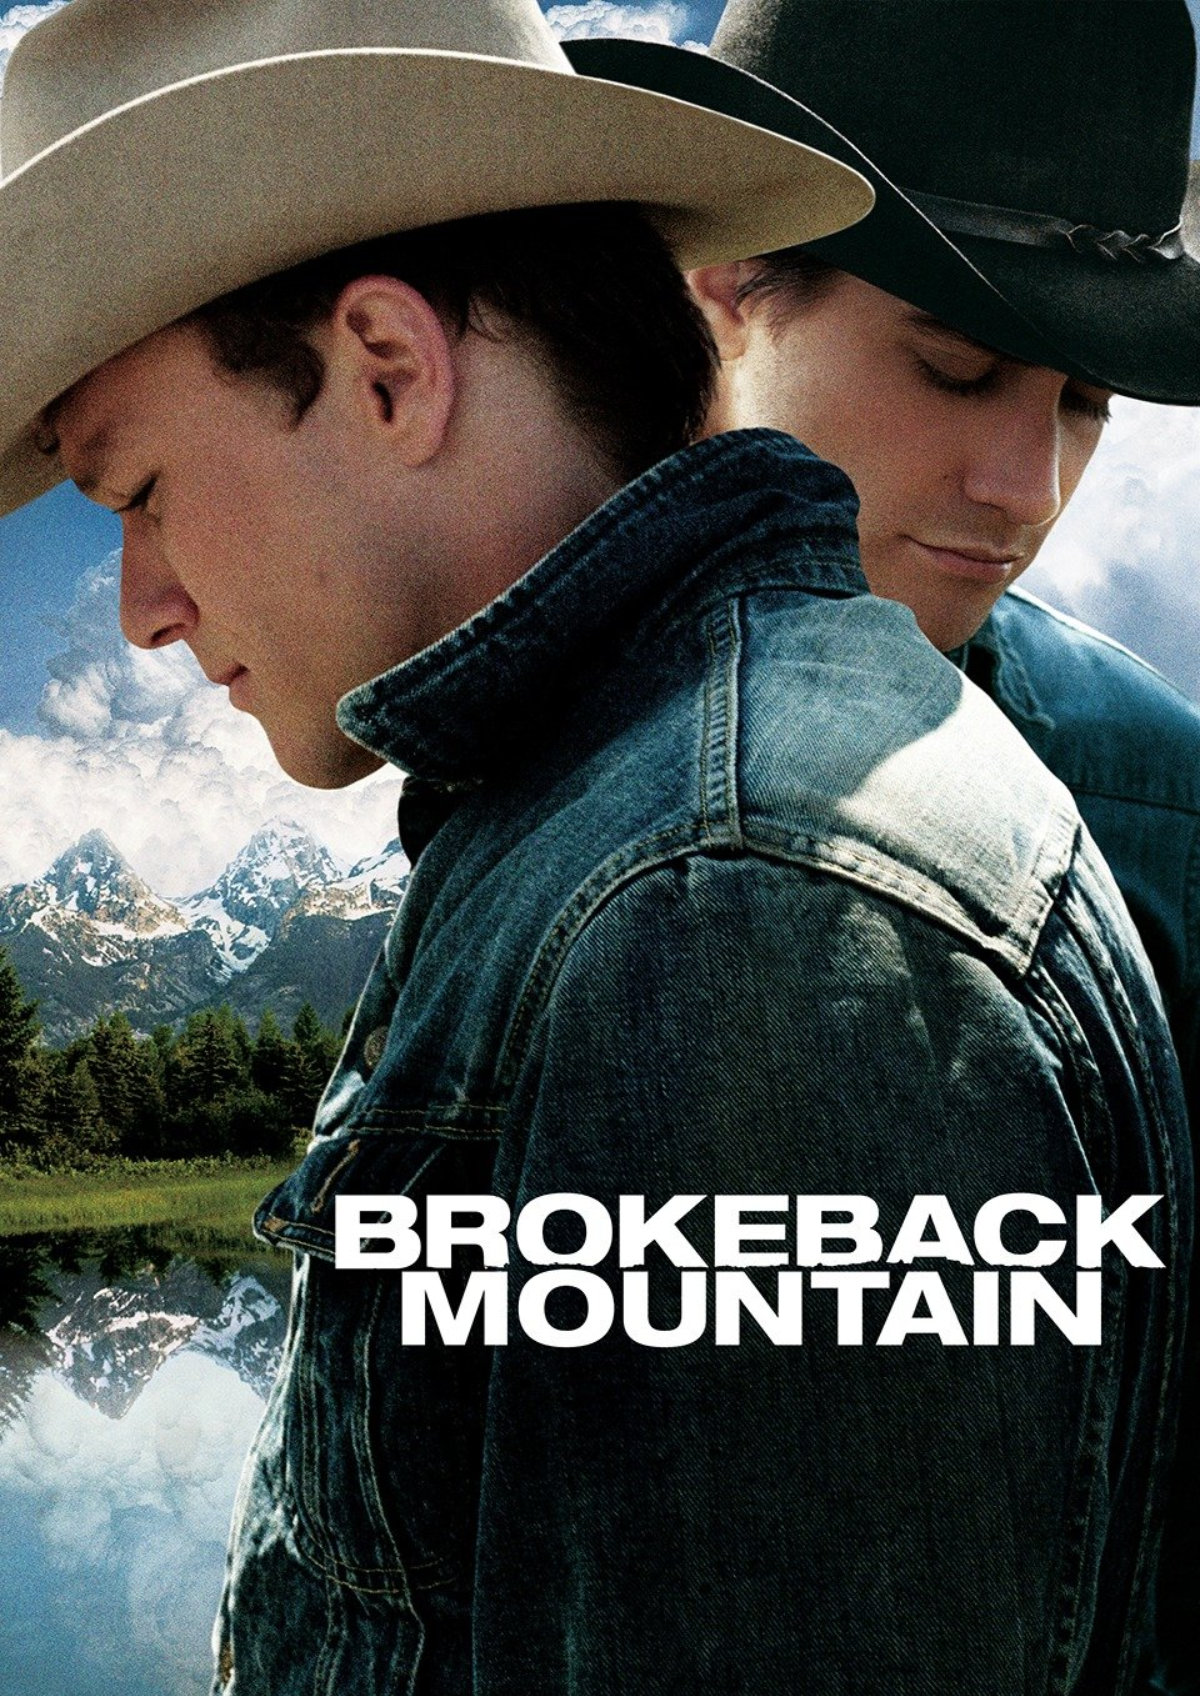 'Brokeback Mountain' movie poster